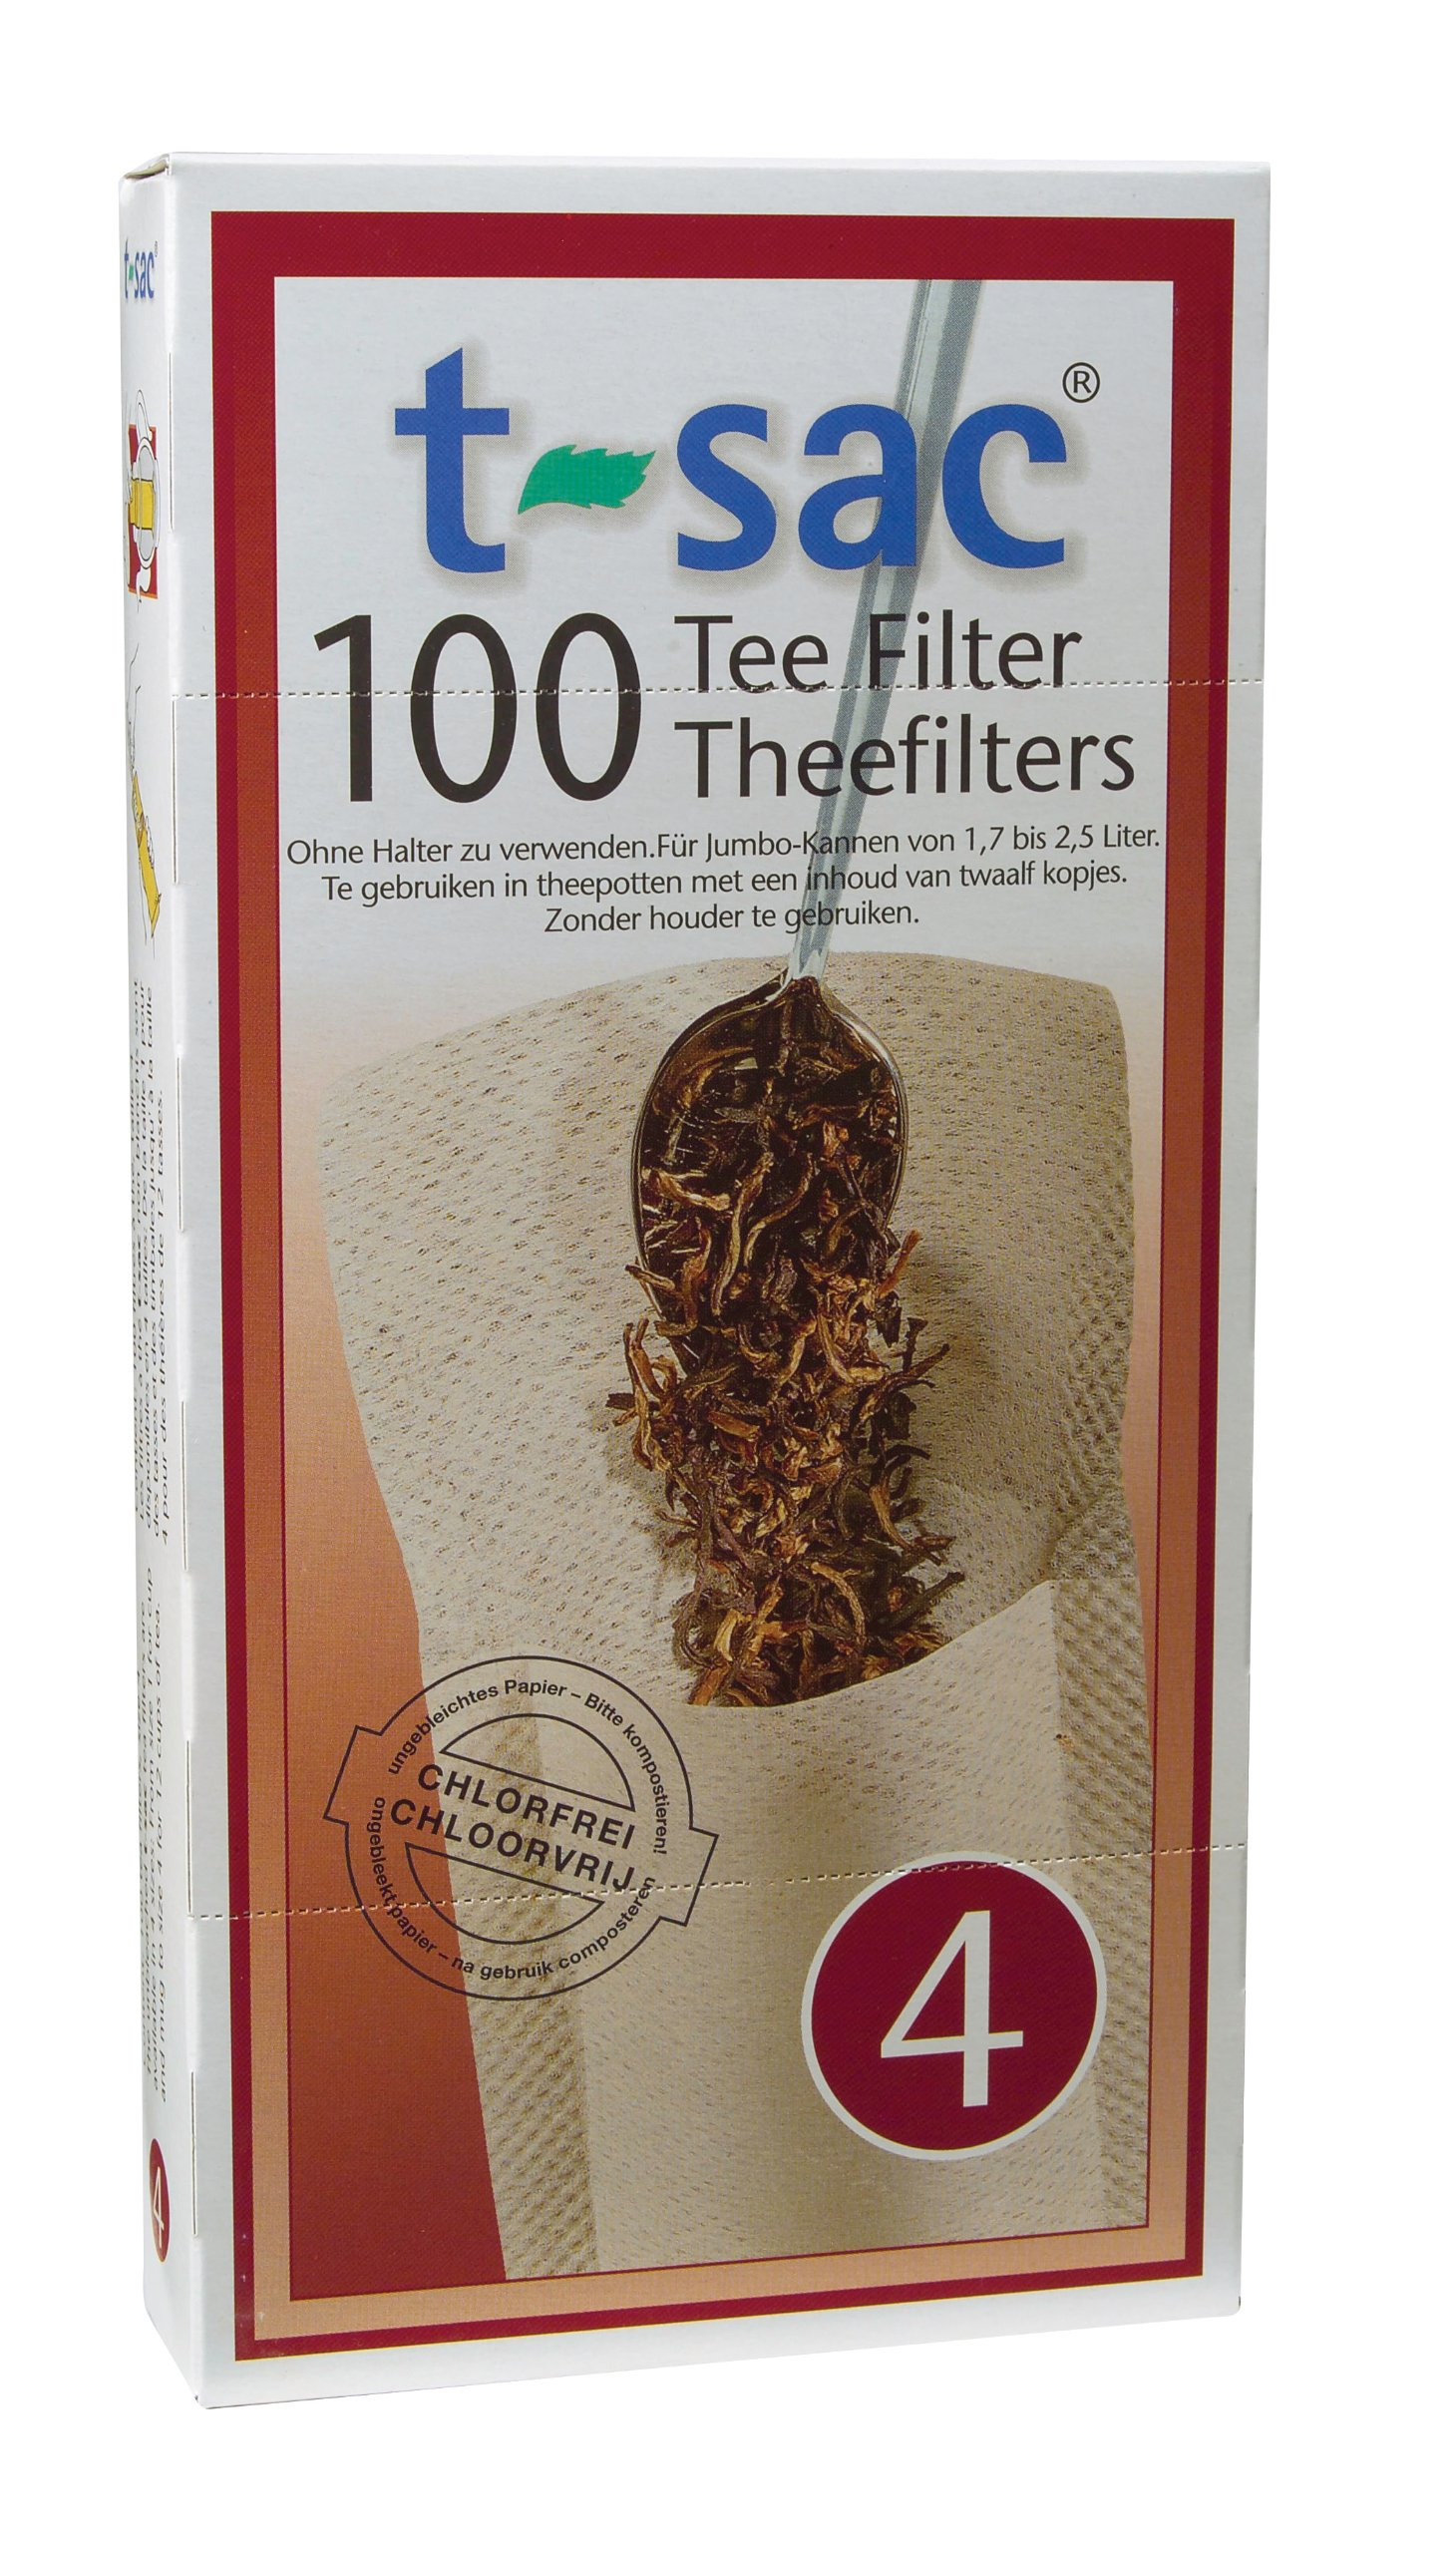 T-Sac Tea Filter Bags, Disposable Tea Infuser, Number 4-Size, 6 to 12-Cup Capacity, Set of 400 by T-Sac (Image #1)